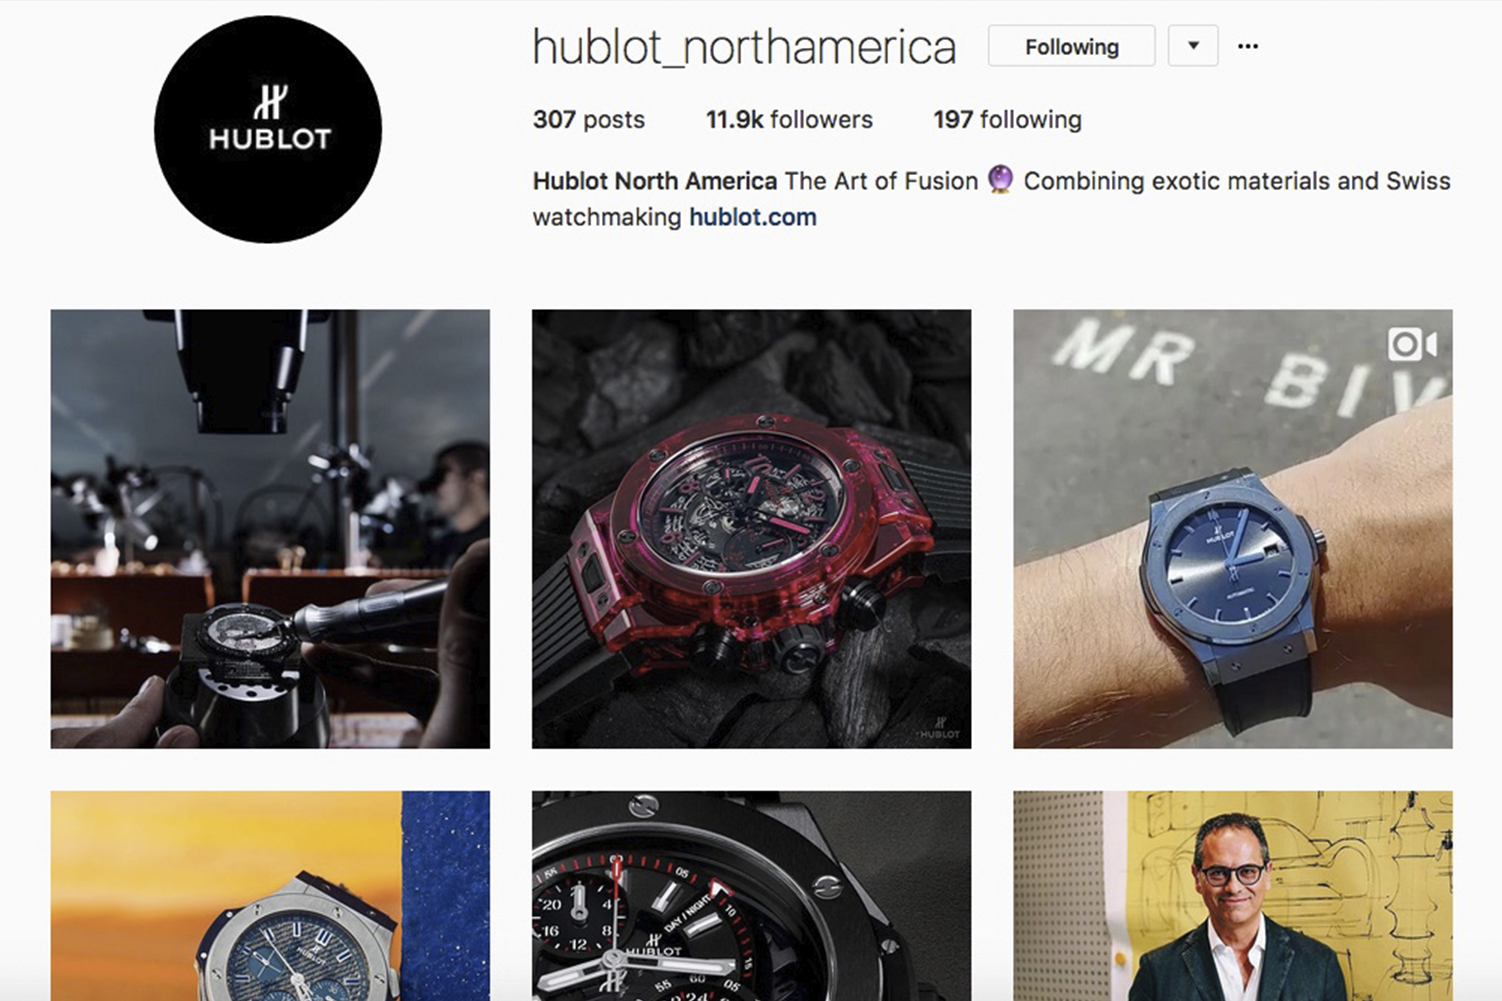 Instagram page for brands